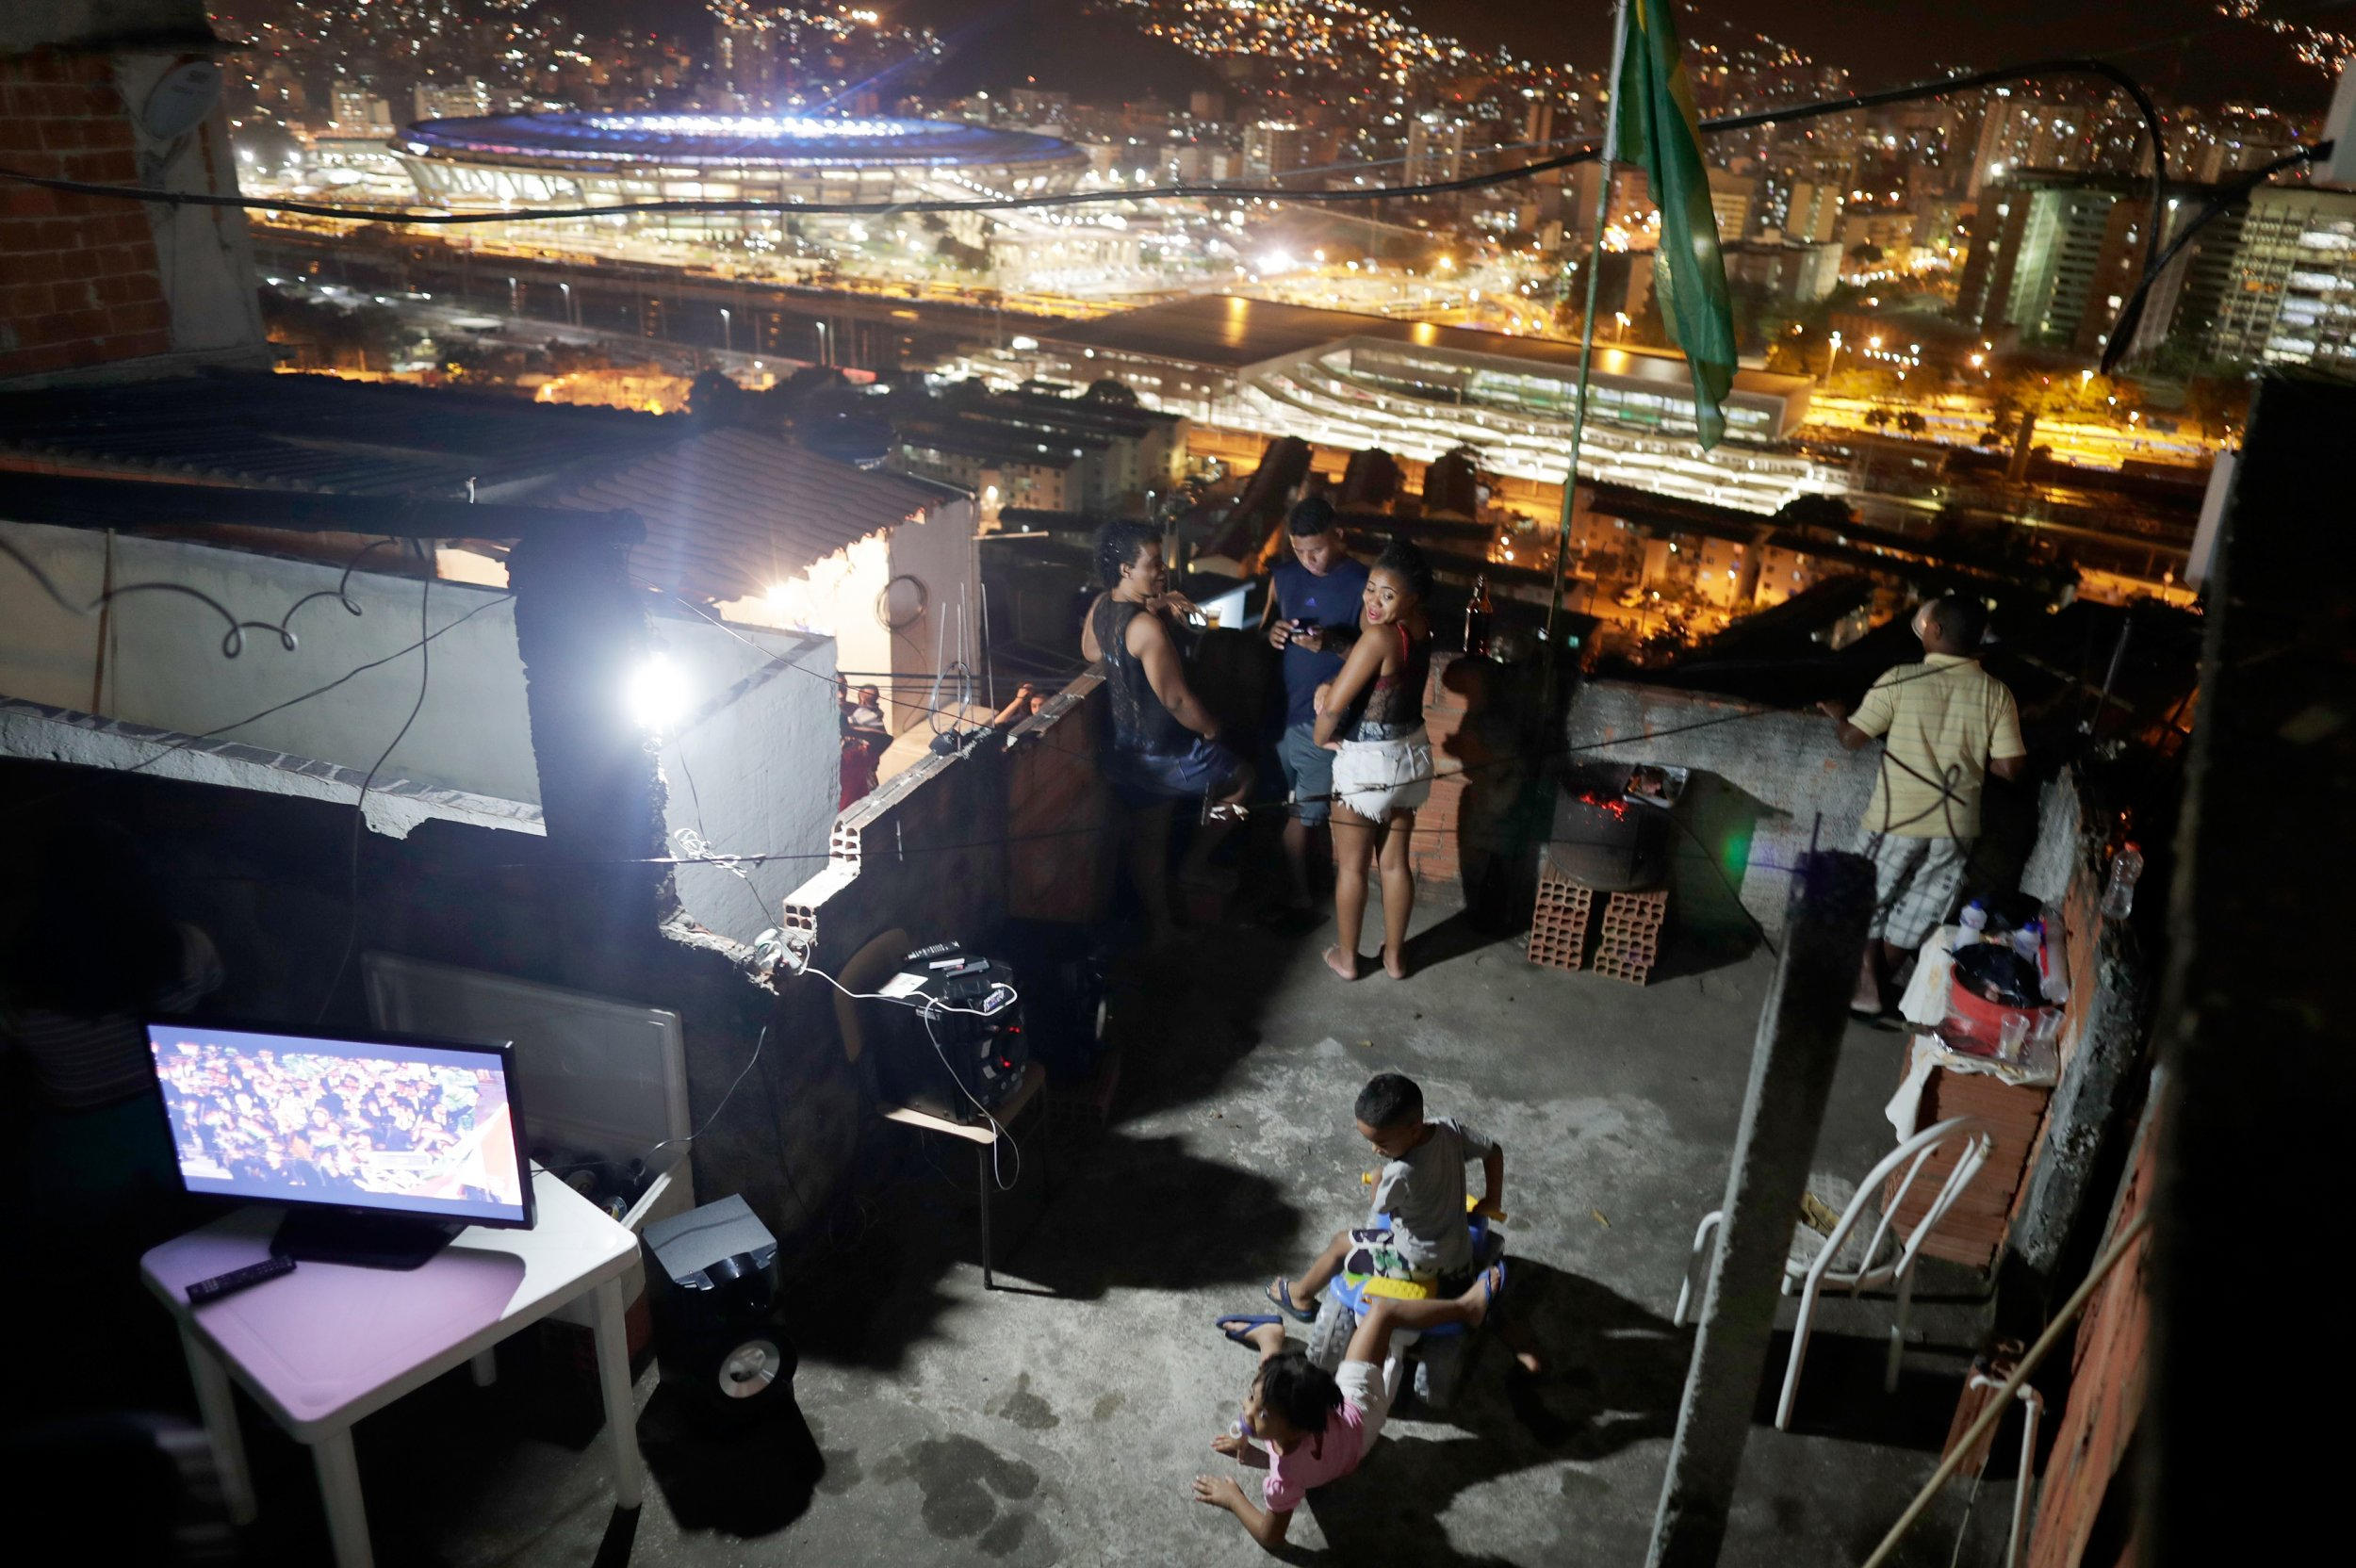 Rio 2016 Favelas Close But So Far Away From Olympics